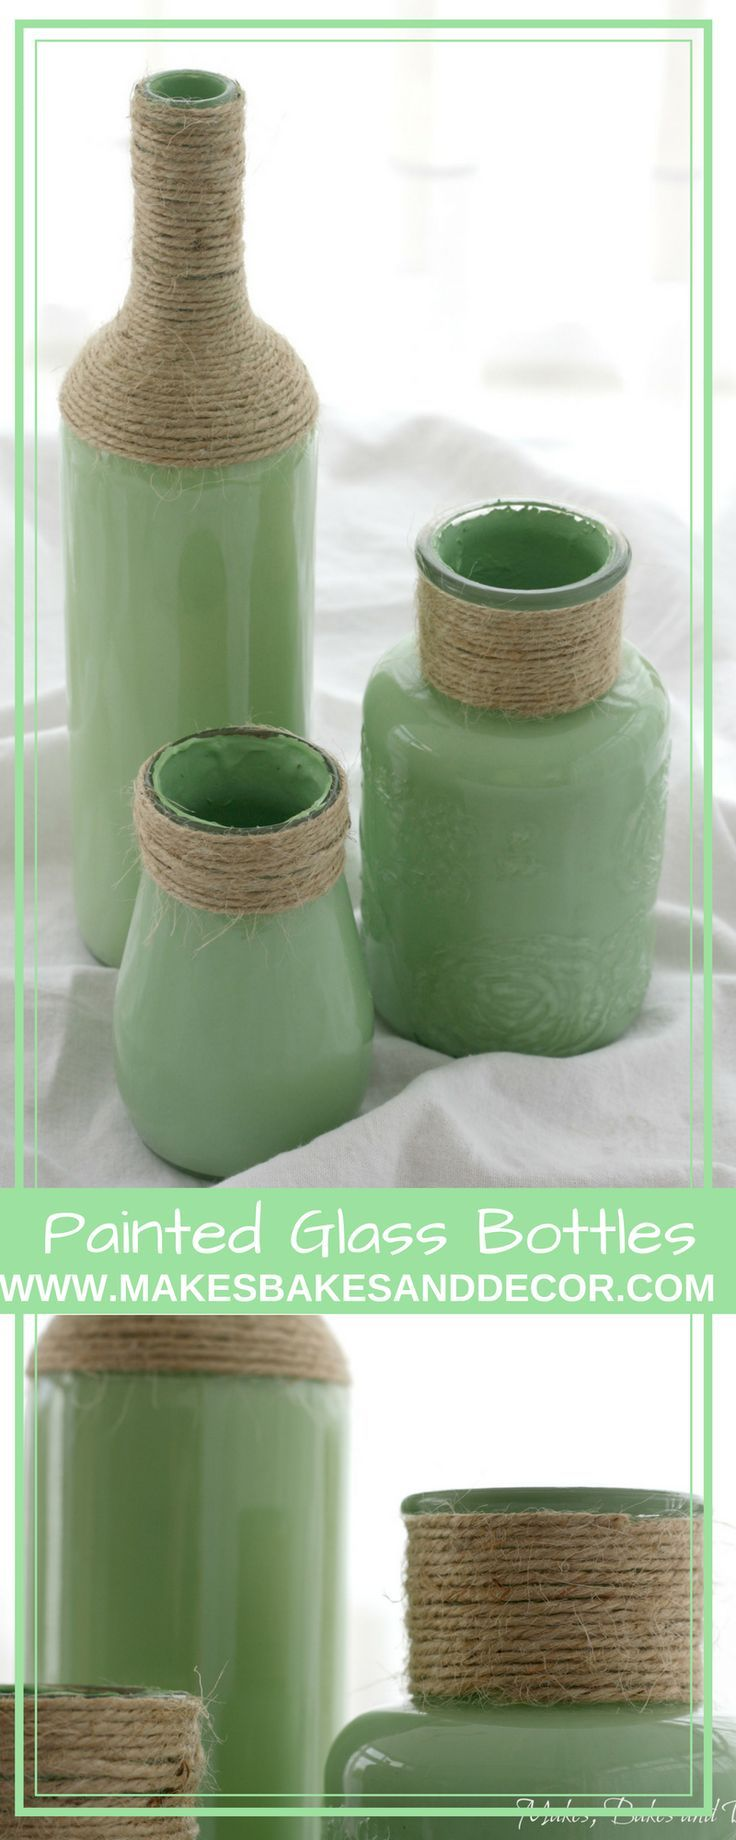 painted glass bottles from Makes, Bakes and Decor. Use this technique to paint the inside of glass bottles and jars to turn them into decorative vases.